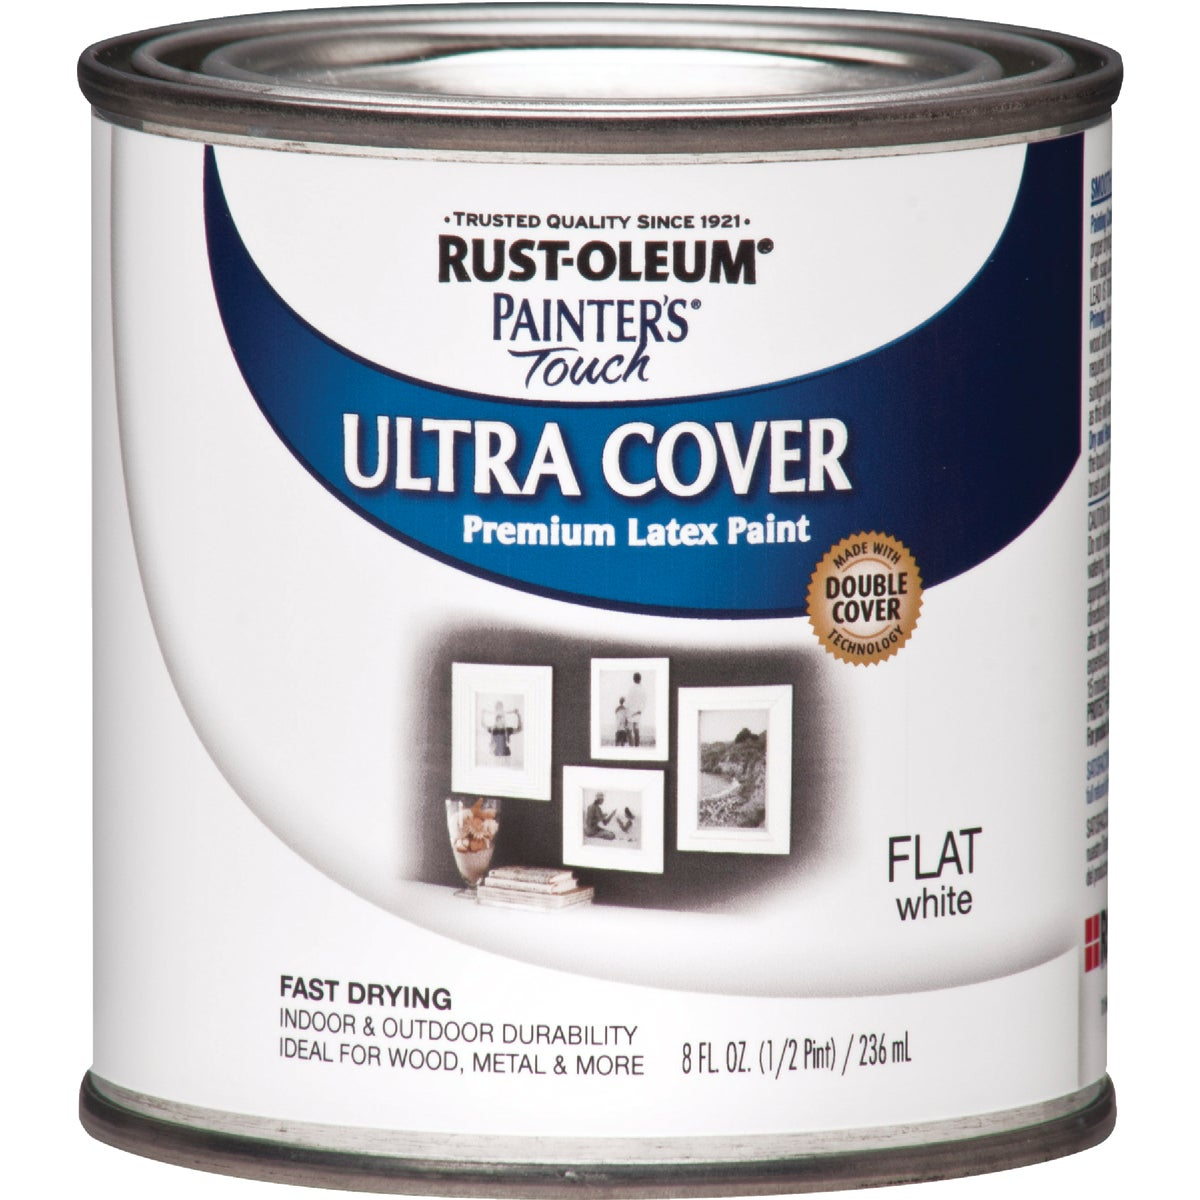 FLAT WHITE LATEX PAINT - 1990-730 by Rustoleum